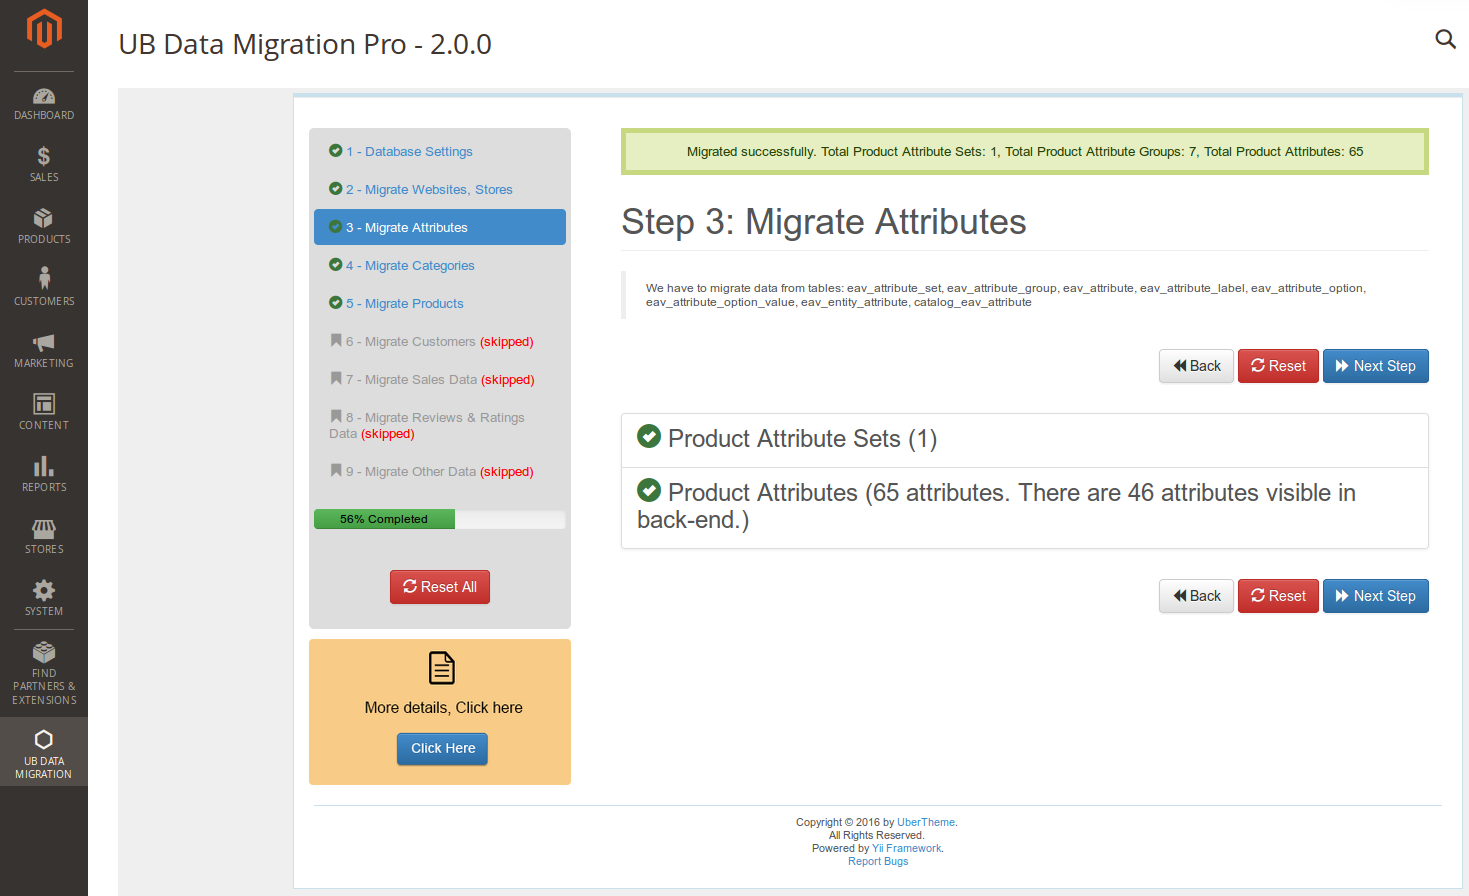 Step 3 - Migrate Attributes